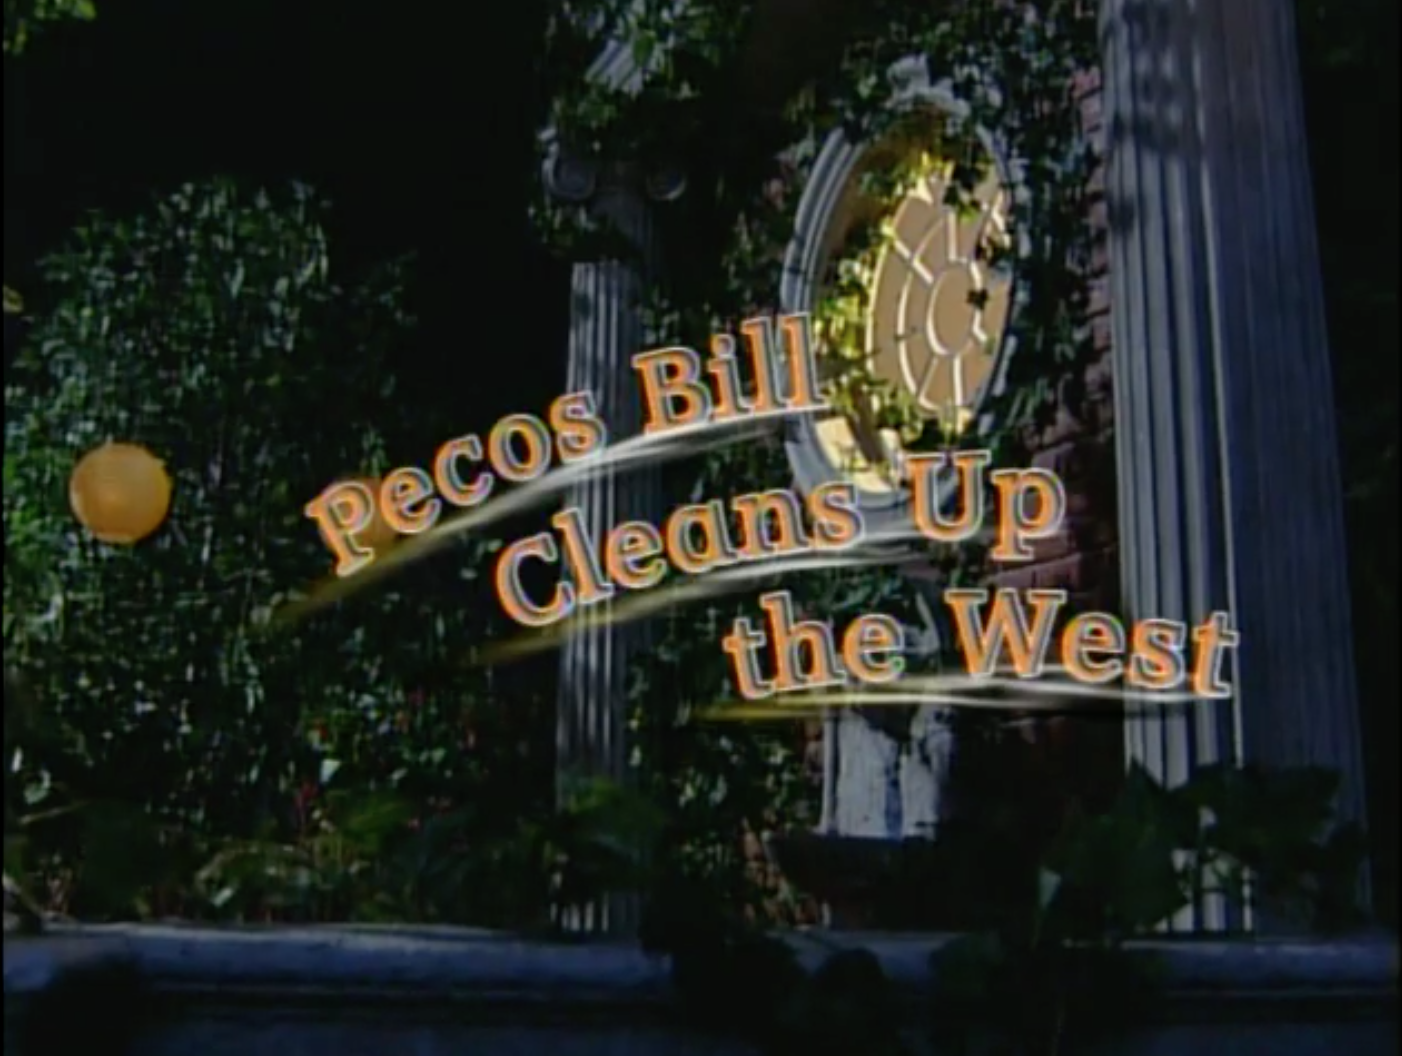 Episode 01: Pecos Bill Cleans Up the West